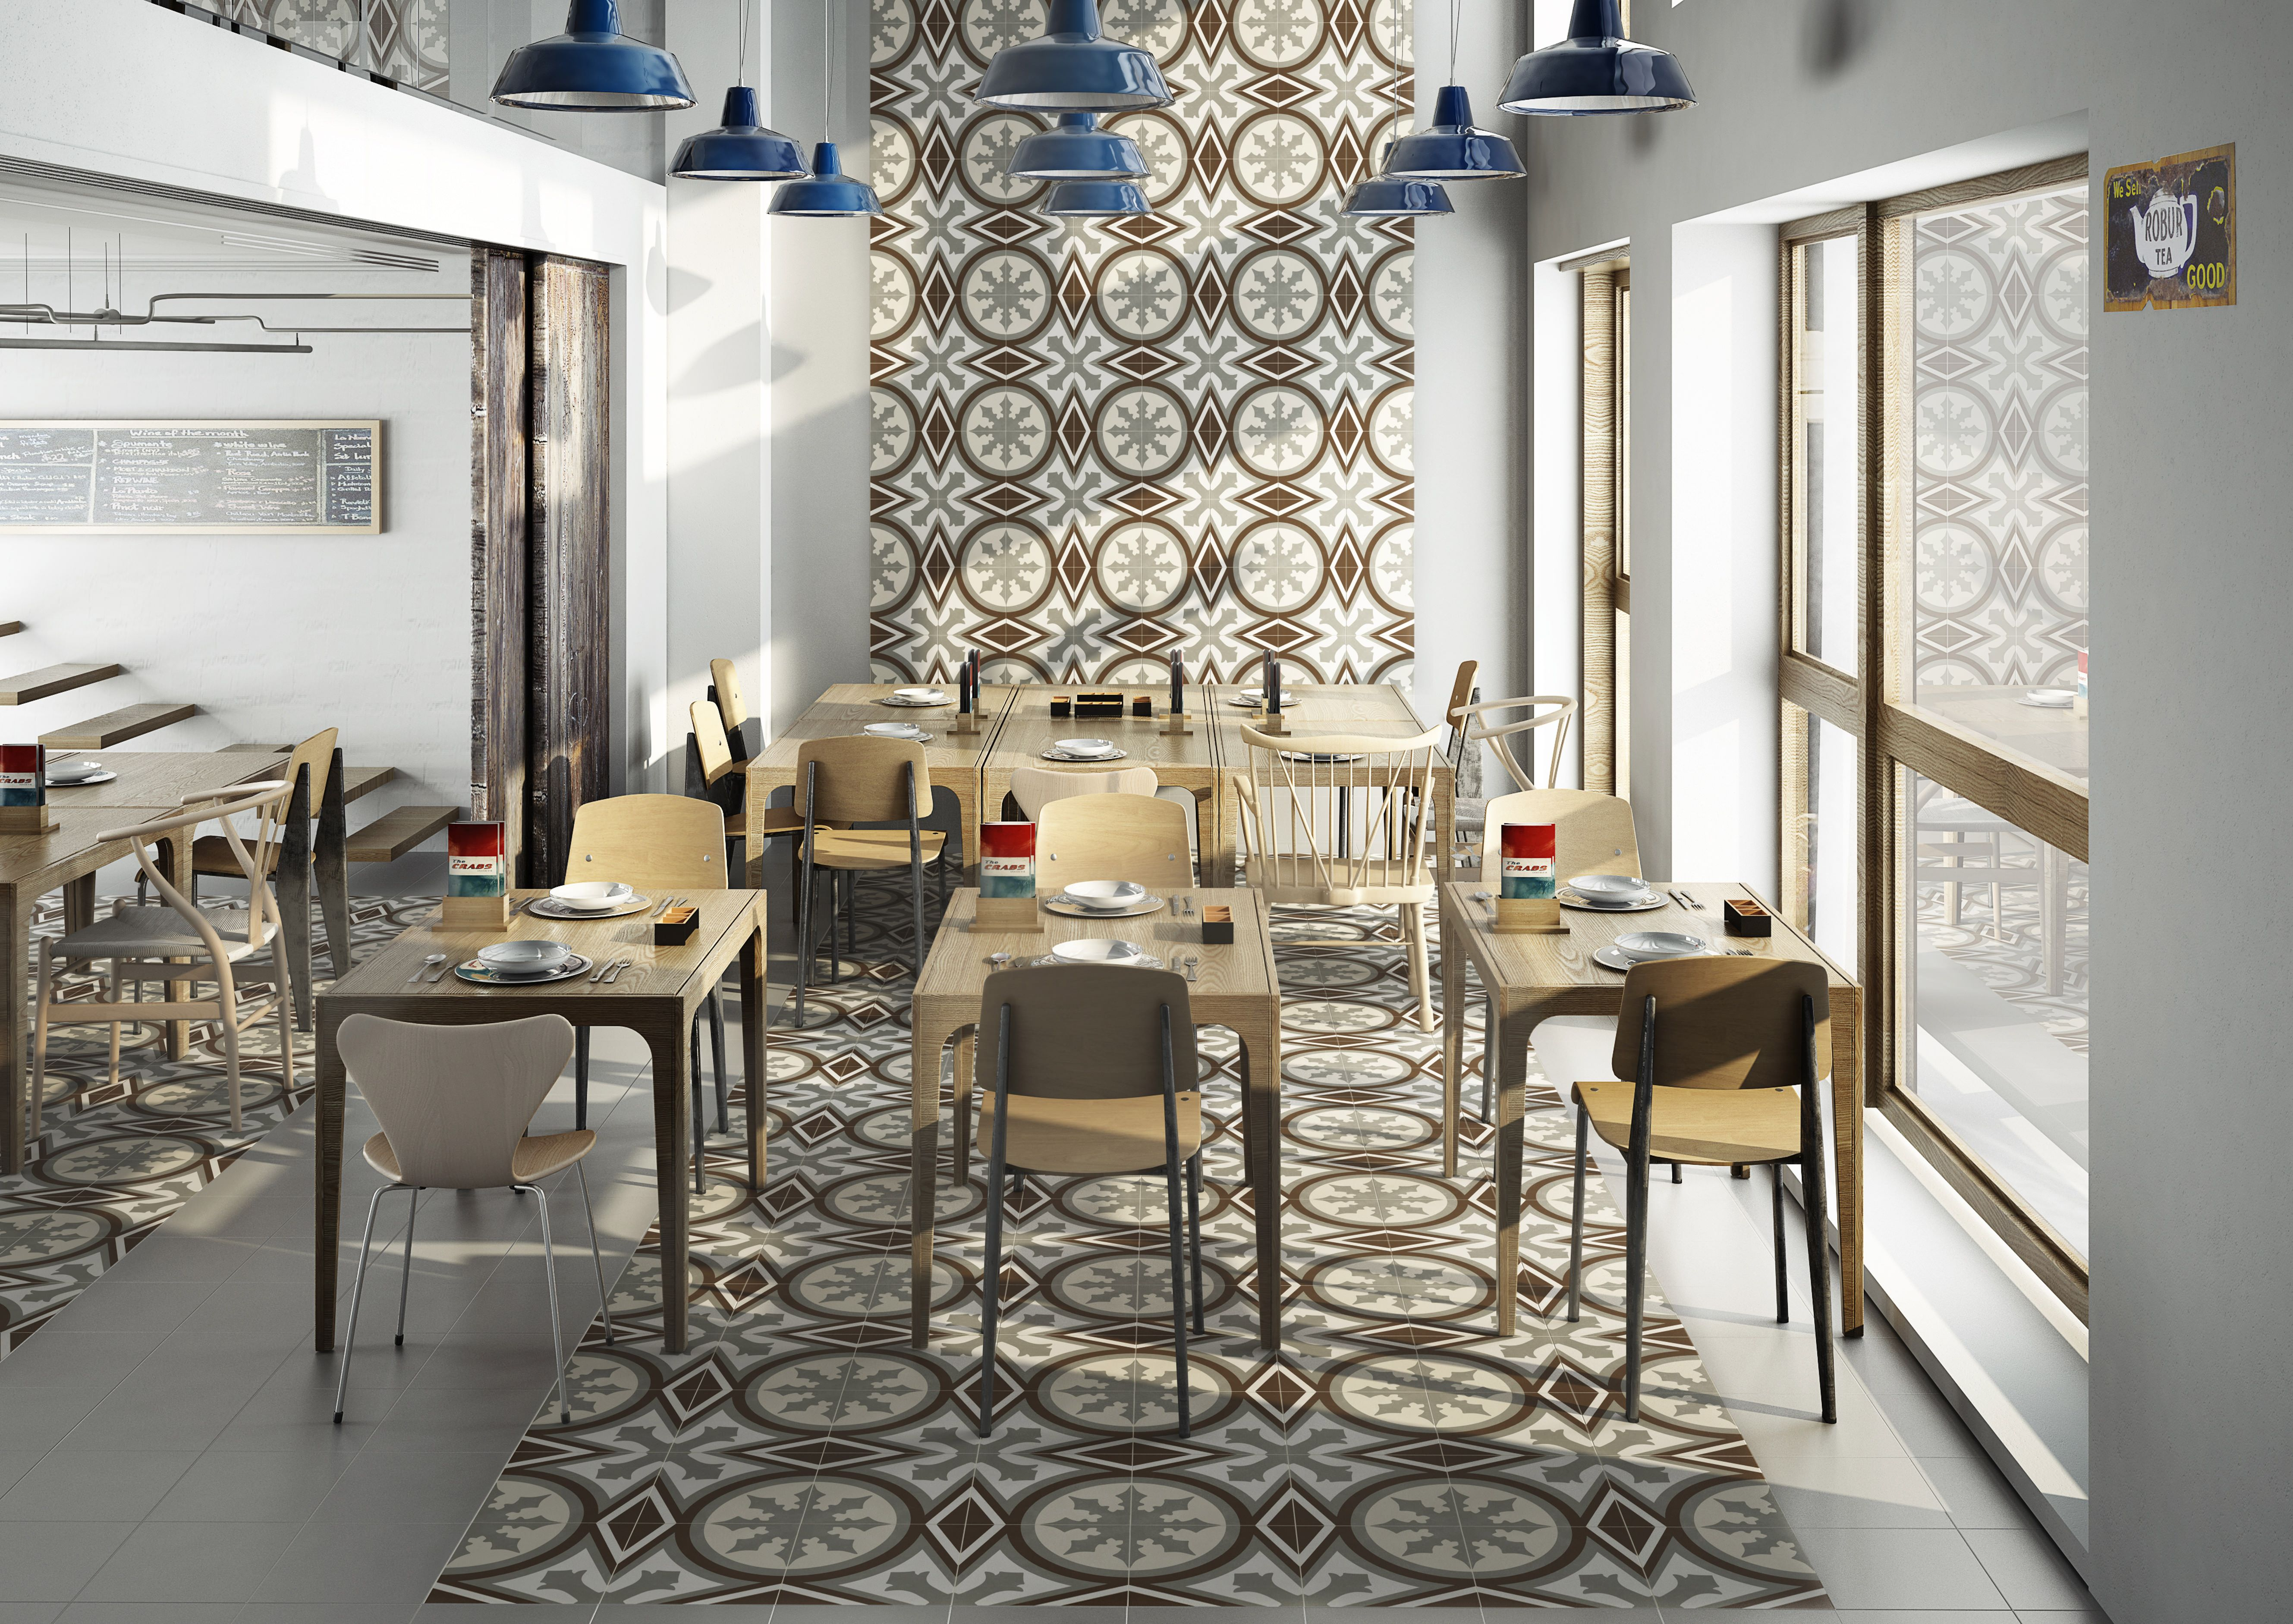 Vanguard rise calgary cnv pinterest porcelain tile vanguard rise tile series from aparici a tile of spain company reaches towards the sky as an accent wall in this restaurant space dailygadgetfo Images